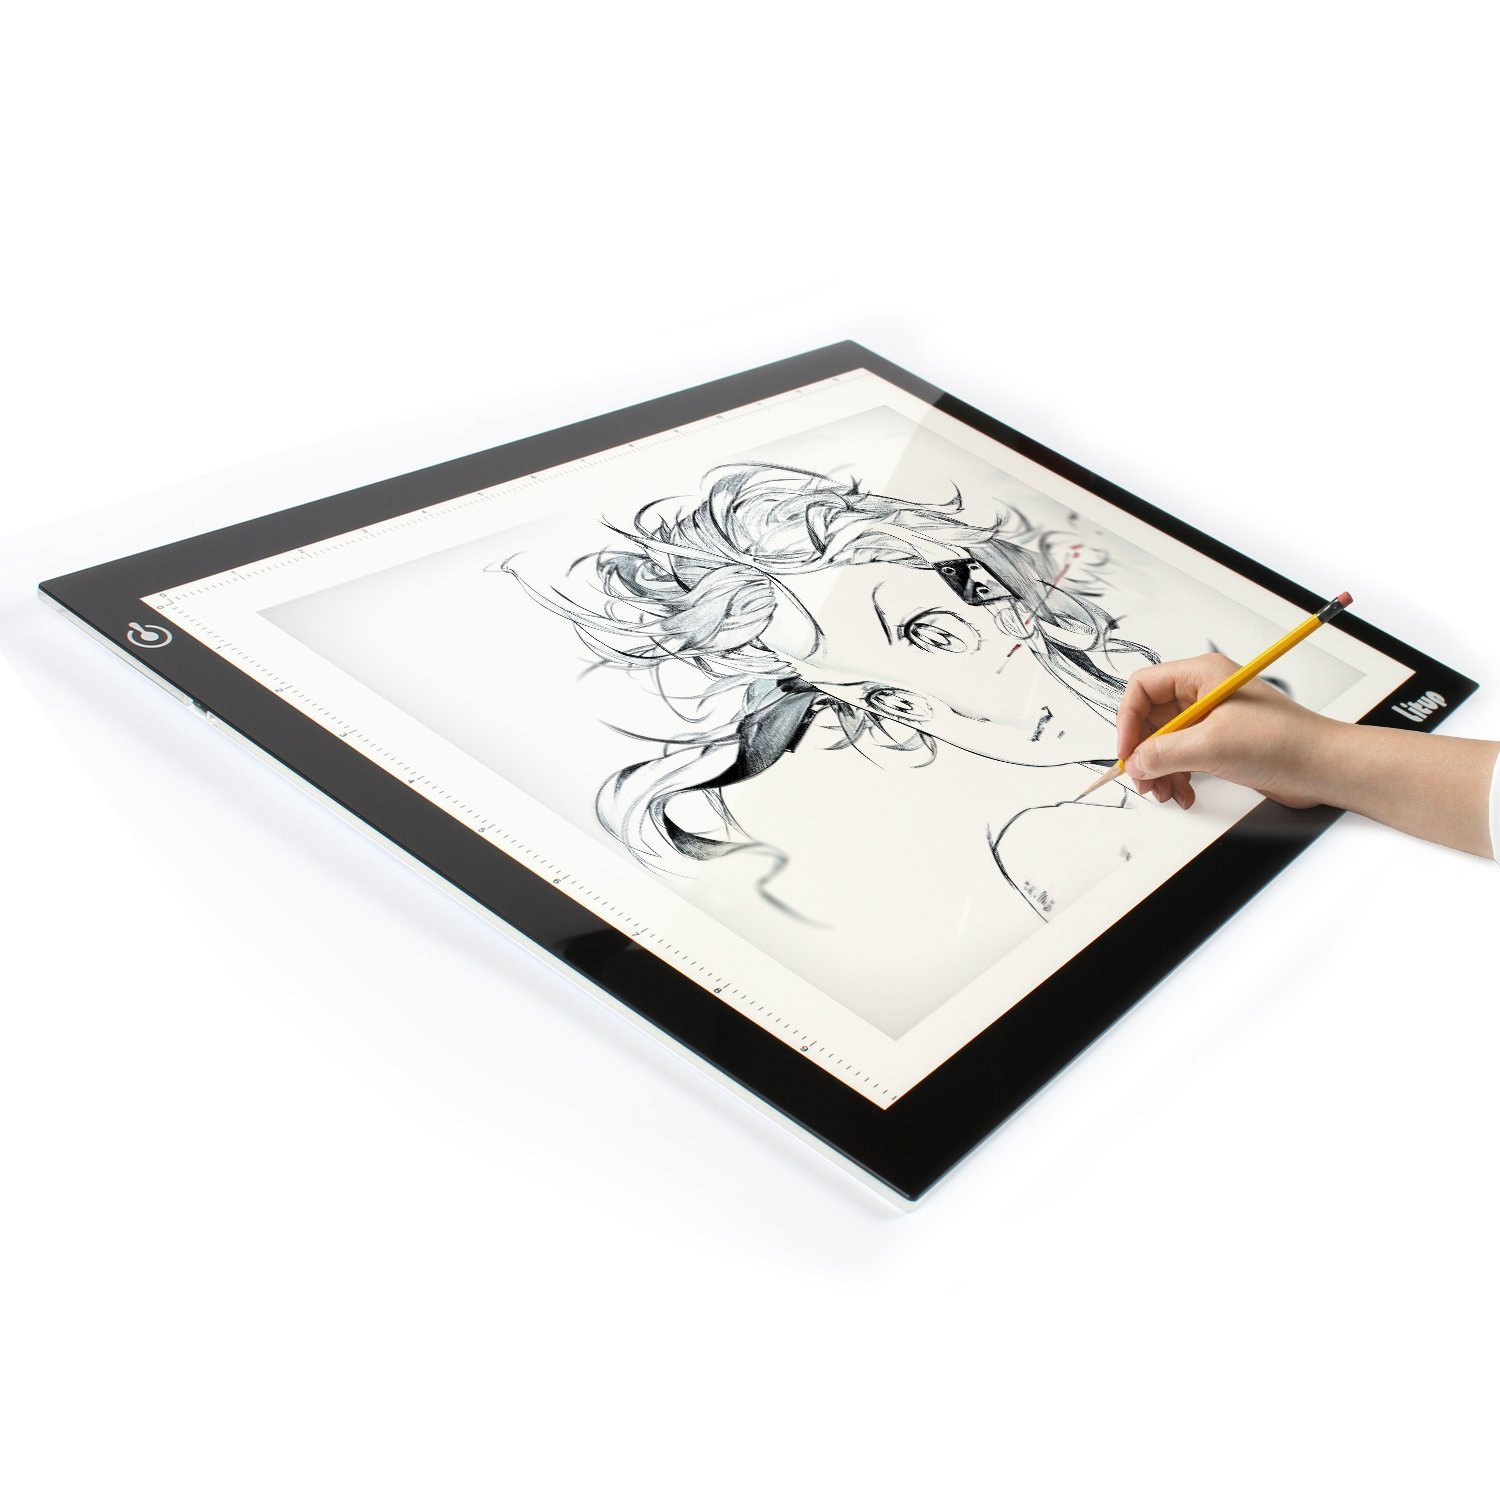 Litup L15.63'× W11.81'(B4) Super Slim and Bright LED Artcraft Tattoo Tracing Light Pad Light Box with USB Cable, Dimmable Brightness, Eyesight Protected Technology, 18 Months of Warranty - LP-B4 Litup LP-B4